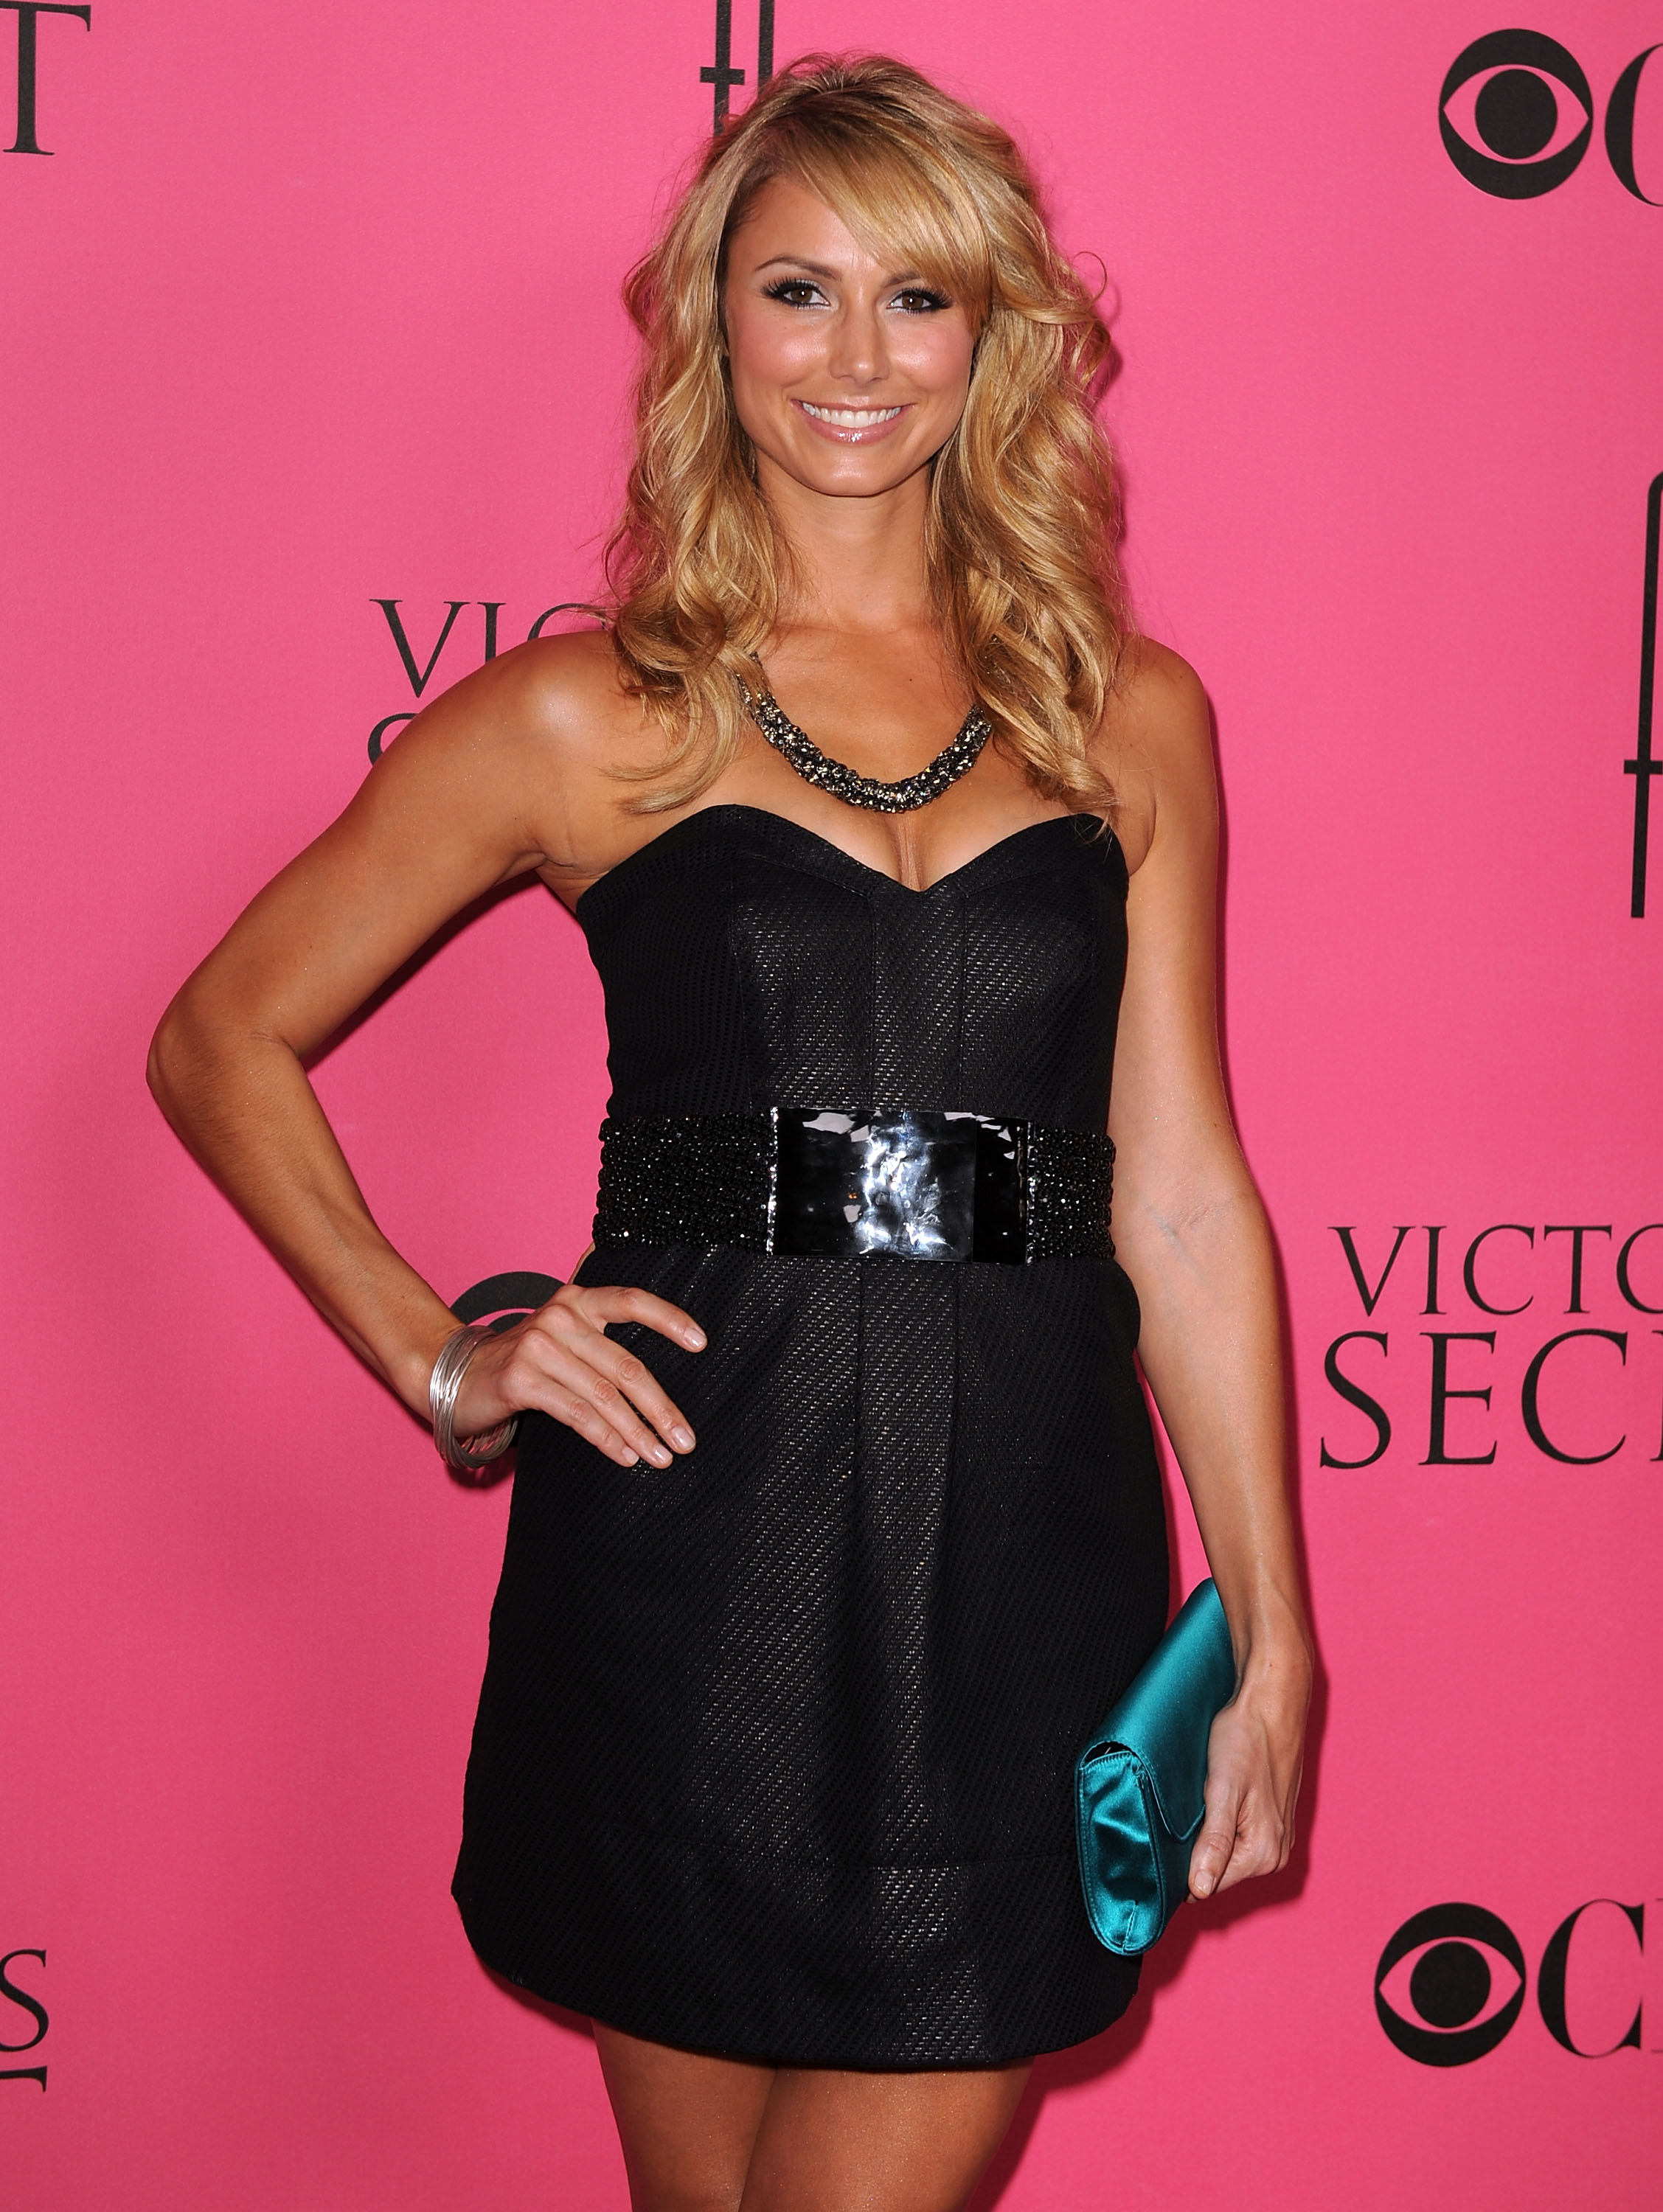 37199_Celebutopia-Stacy_Keibler_arrives_at_the_2008_Victoria34s_Secret_Fashion_Show-02_122_586lo.jpg